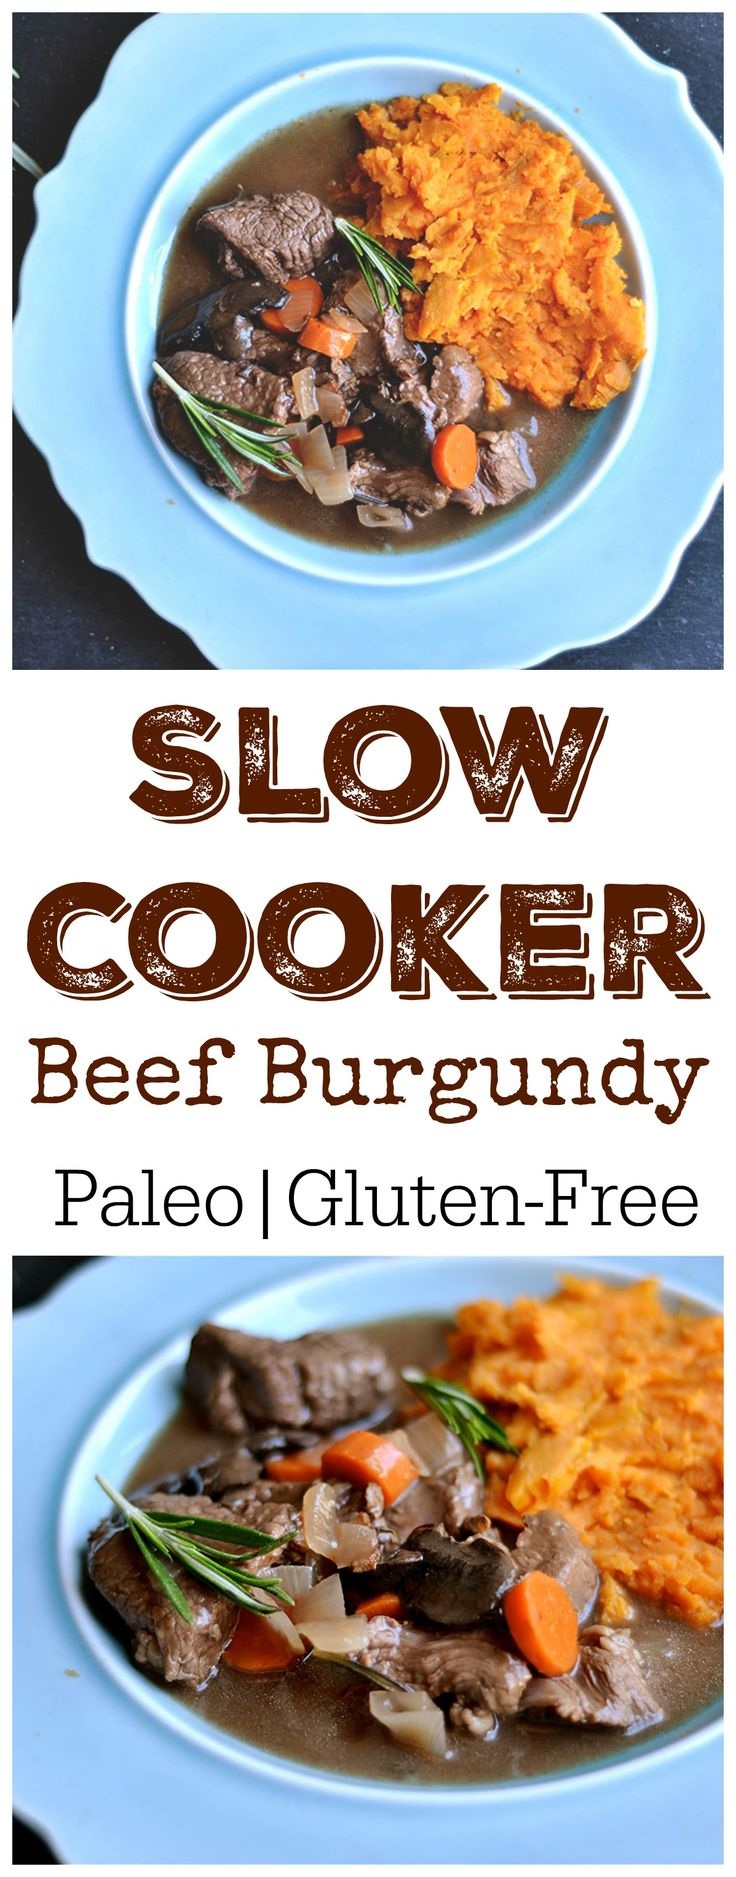 Super Easy Beef Burgundy that makes the most tender and delicious braised beef! An elegant meal that is great for holidays or company.